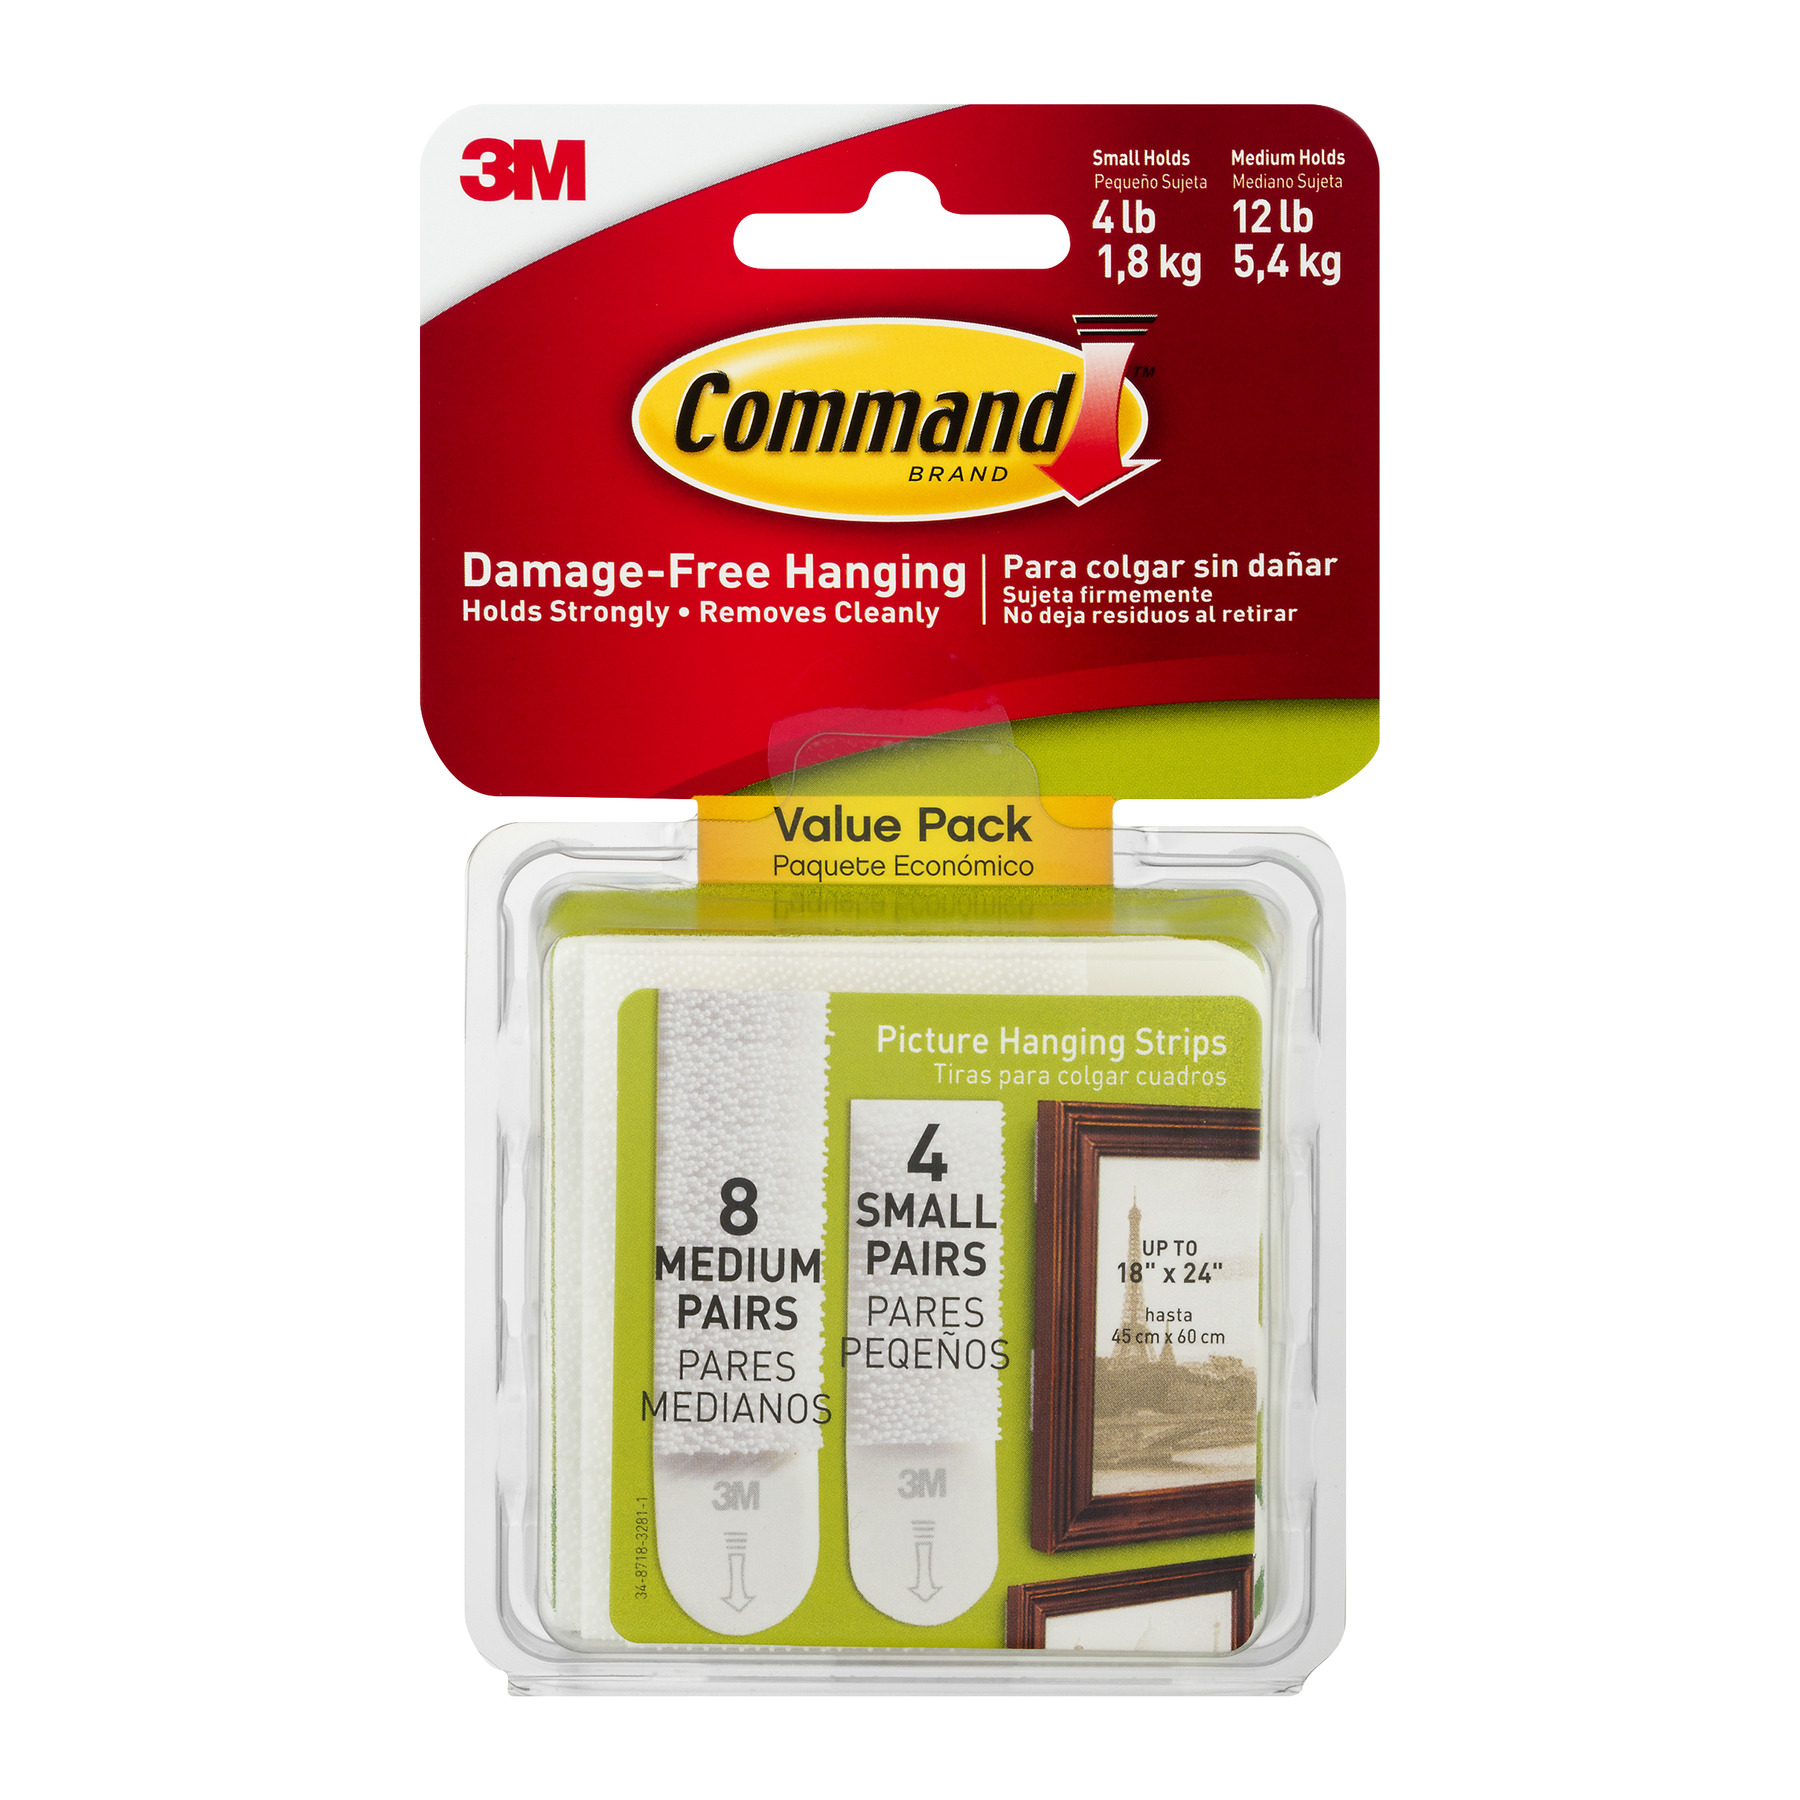 Command Damage-Free Hanging Small/Medium Picture Hanging Strips - 12 CT